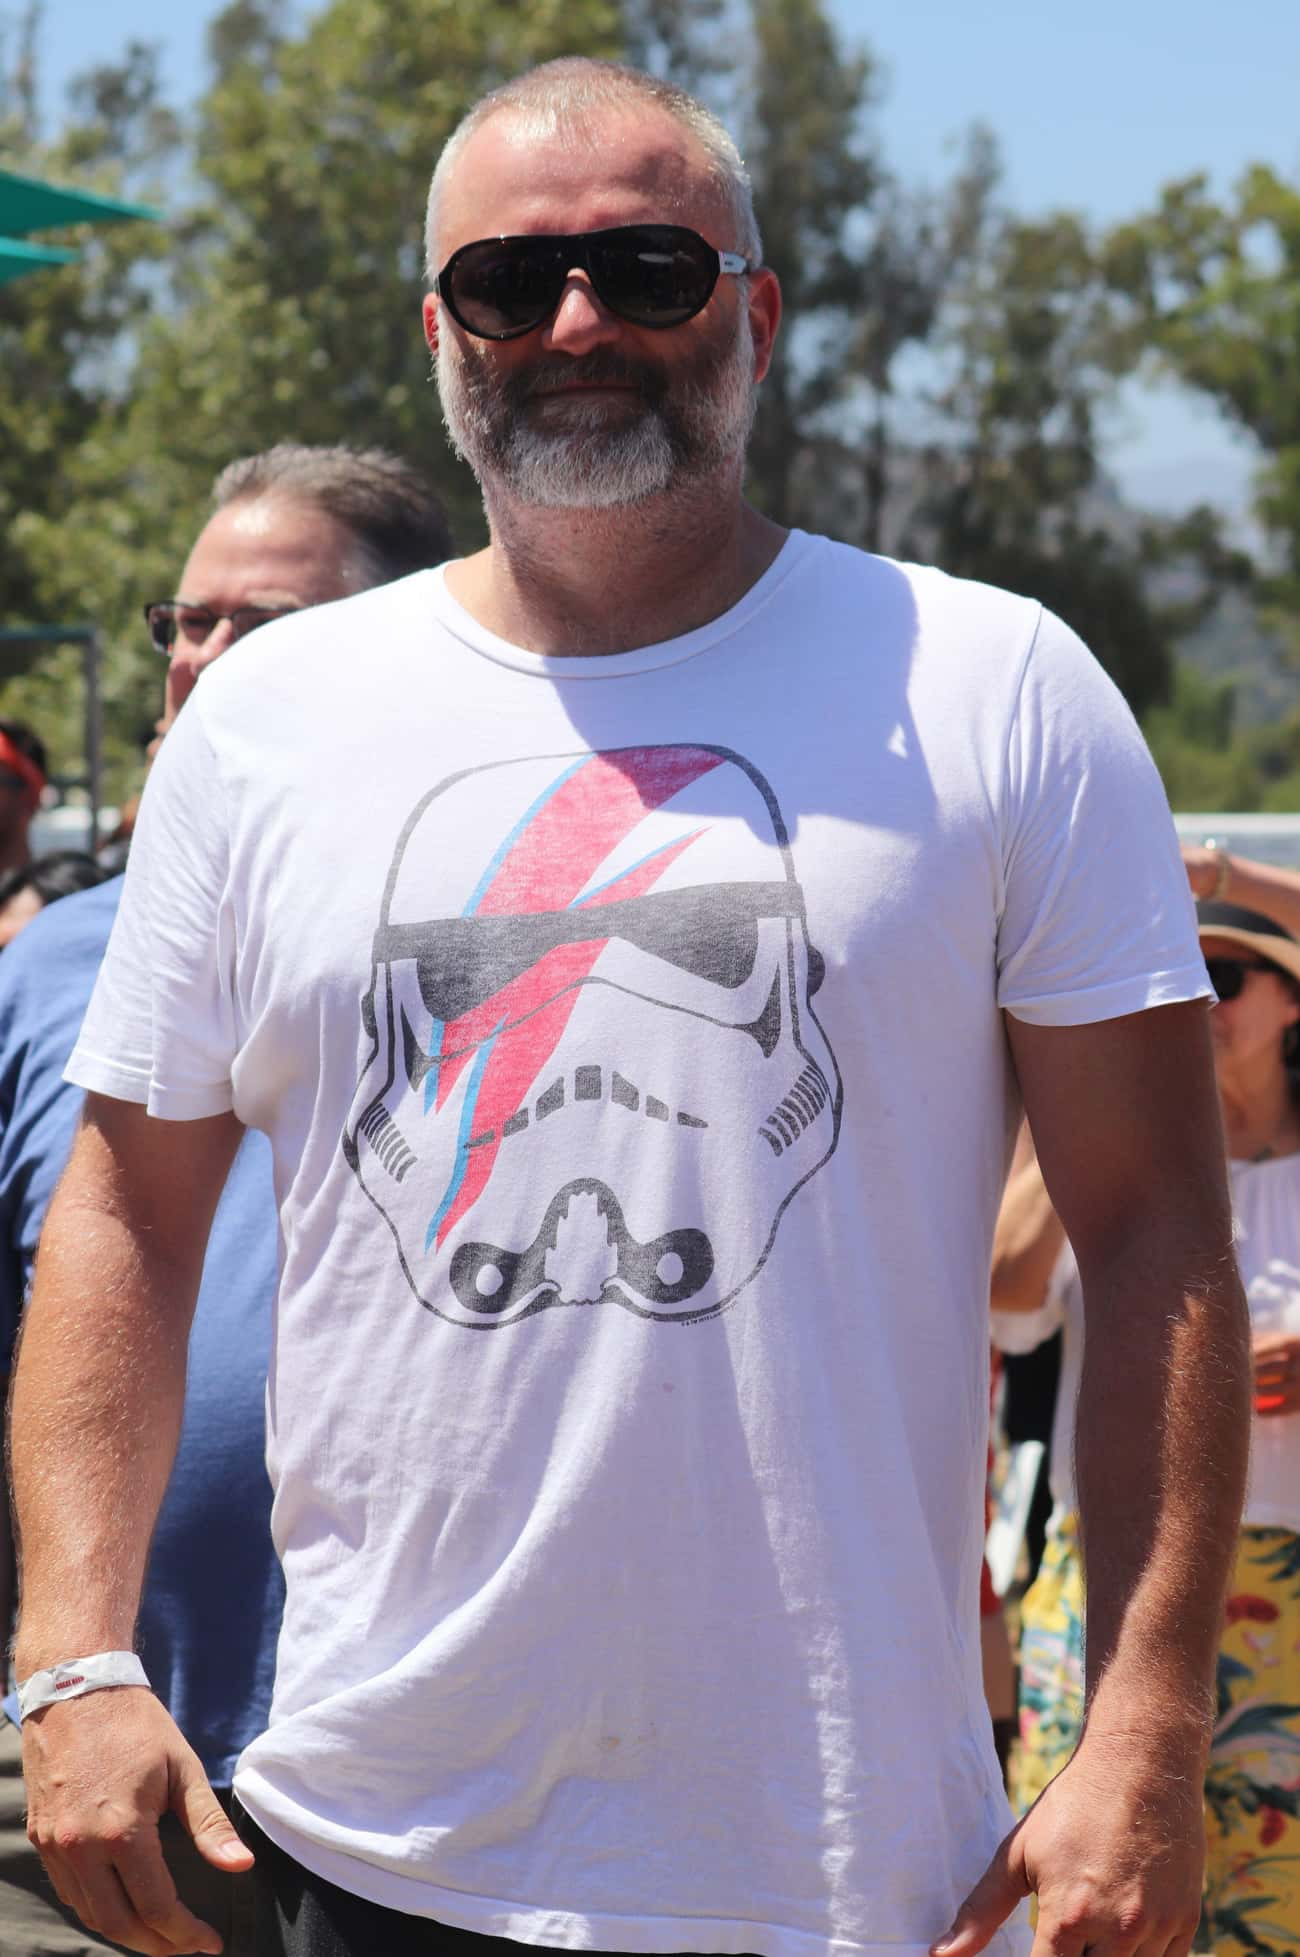 Stars And Storms is listed (or ranked) 4 on the list The 15 Best T-Shirts We Found At Arroyo Seco Weekend